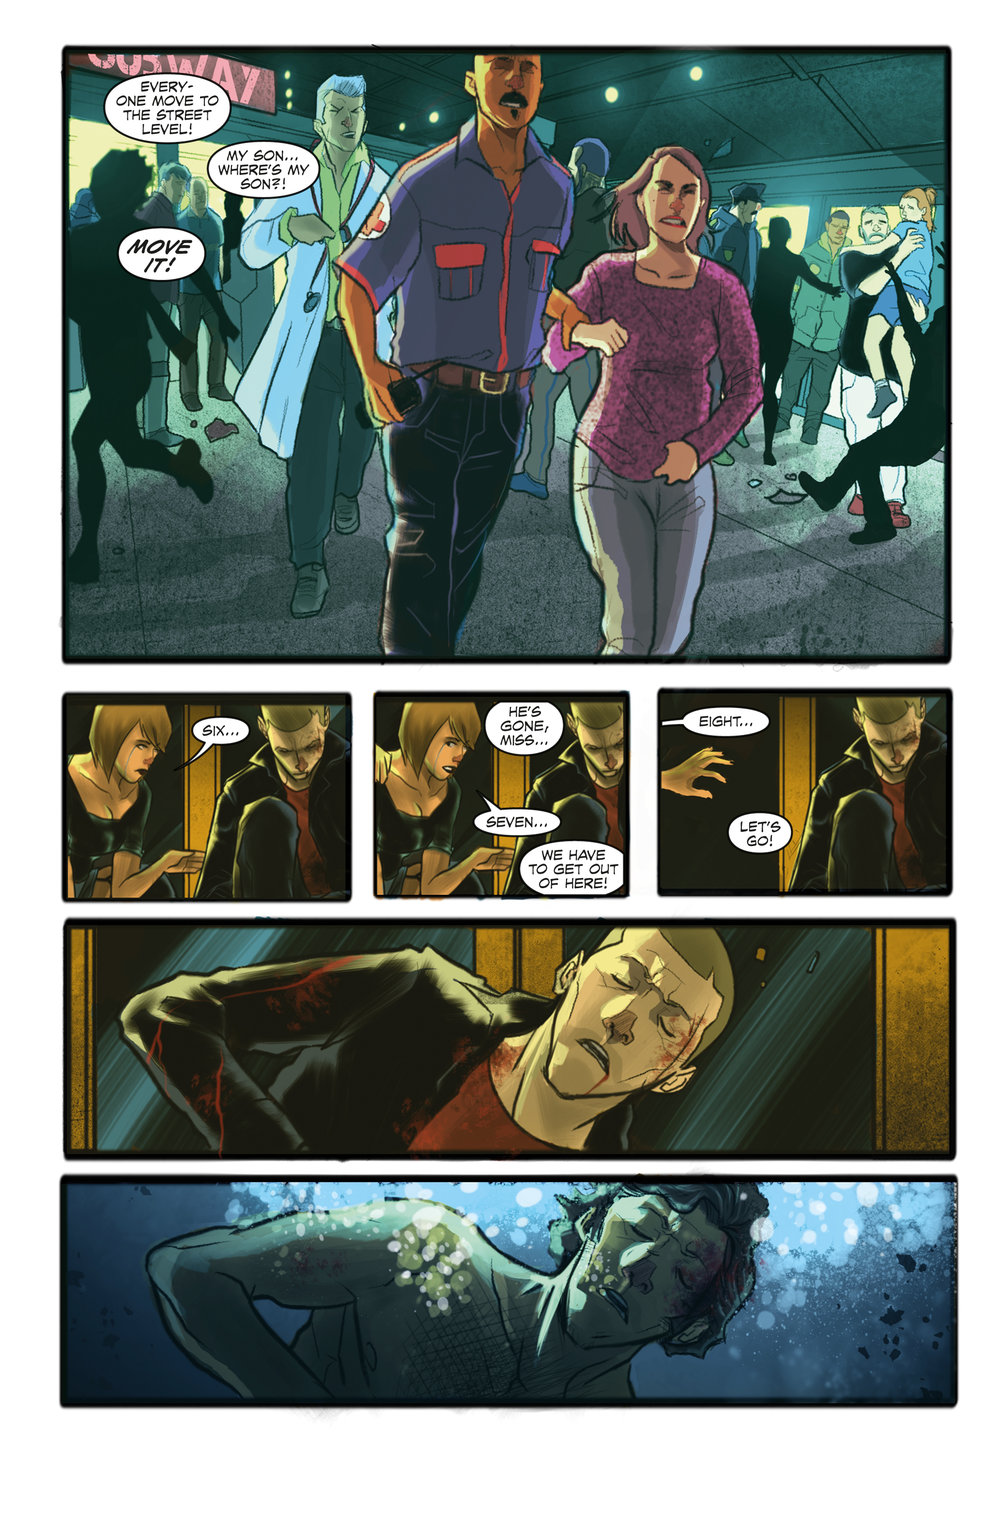 Shelter Division #2 Page 1-01.jpg